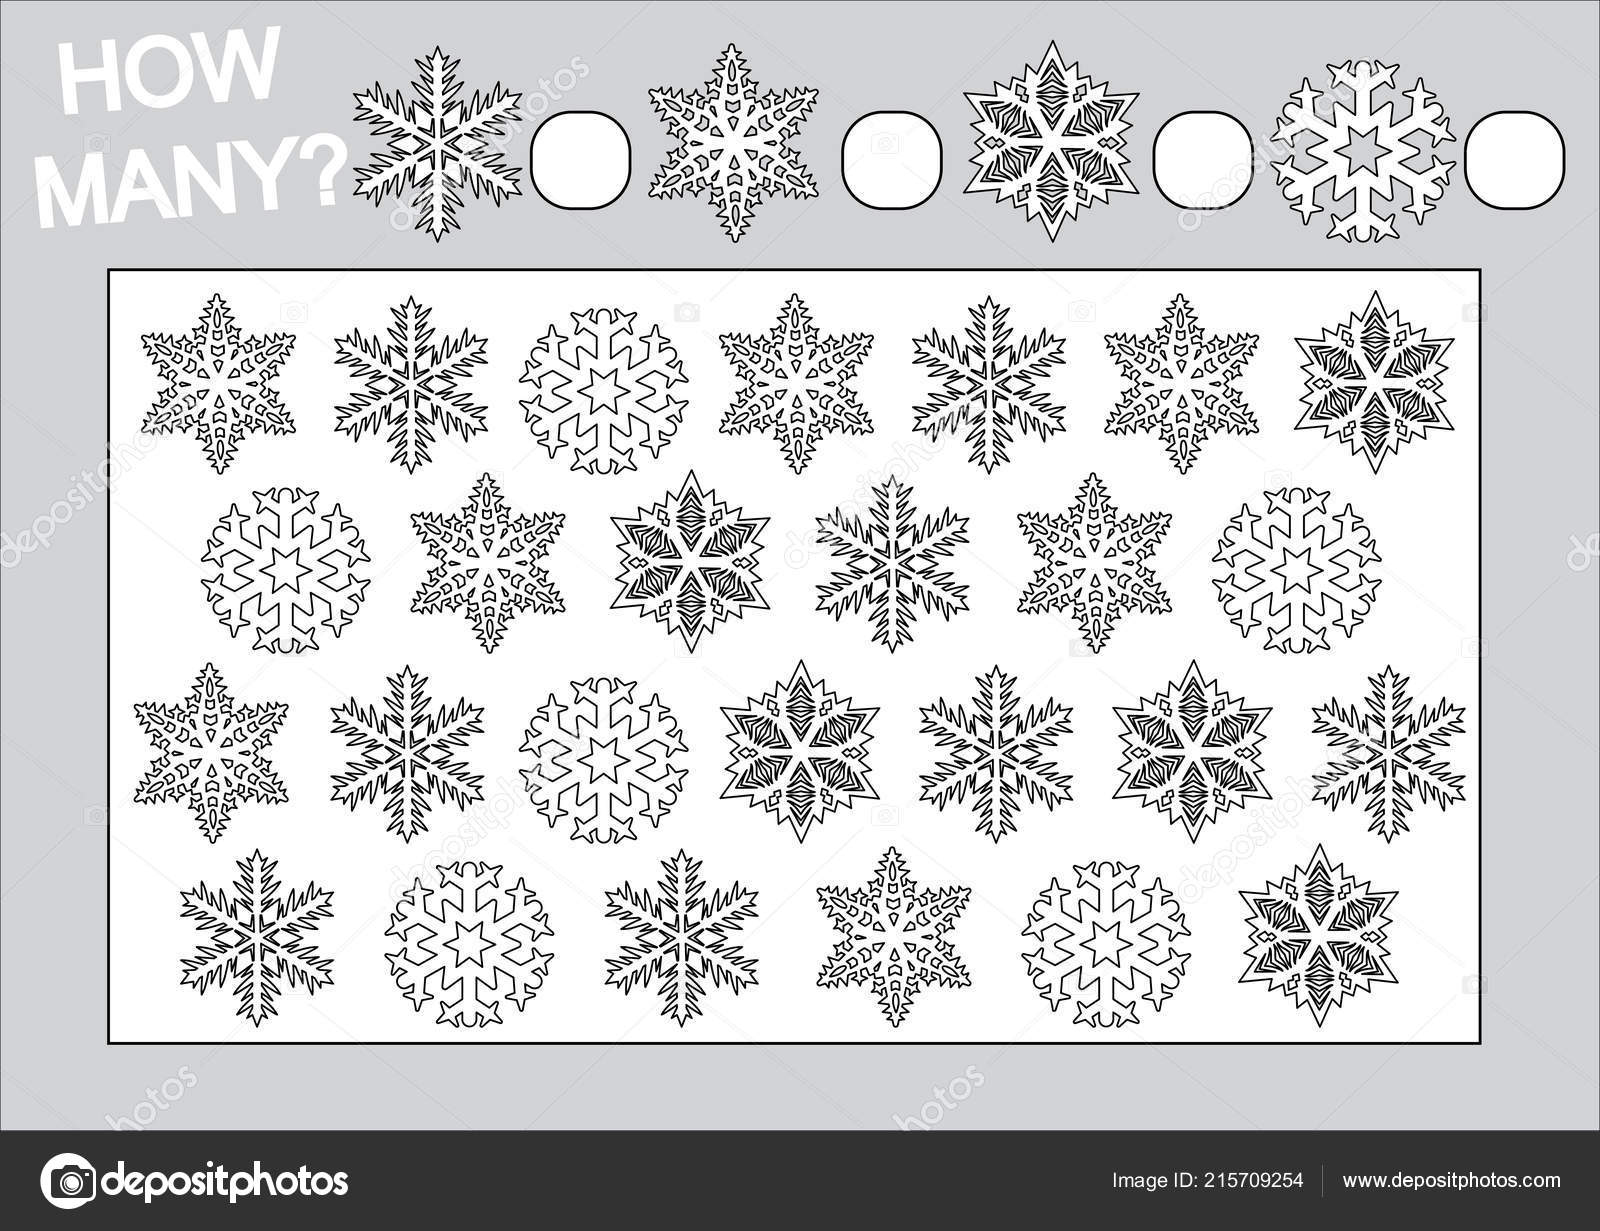 Coloring Book Educational Game How Many Snowflakes Children Vector